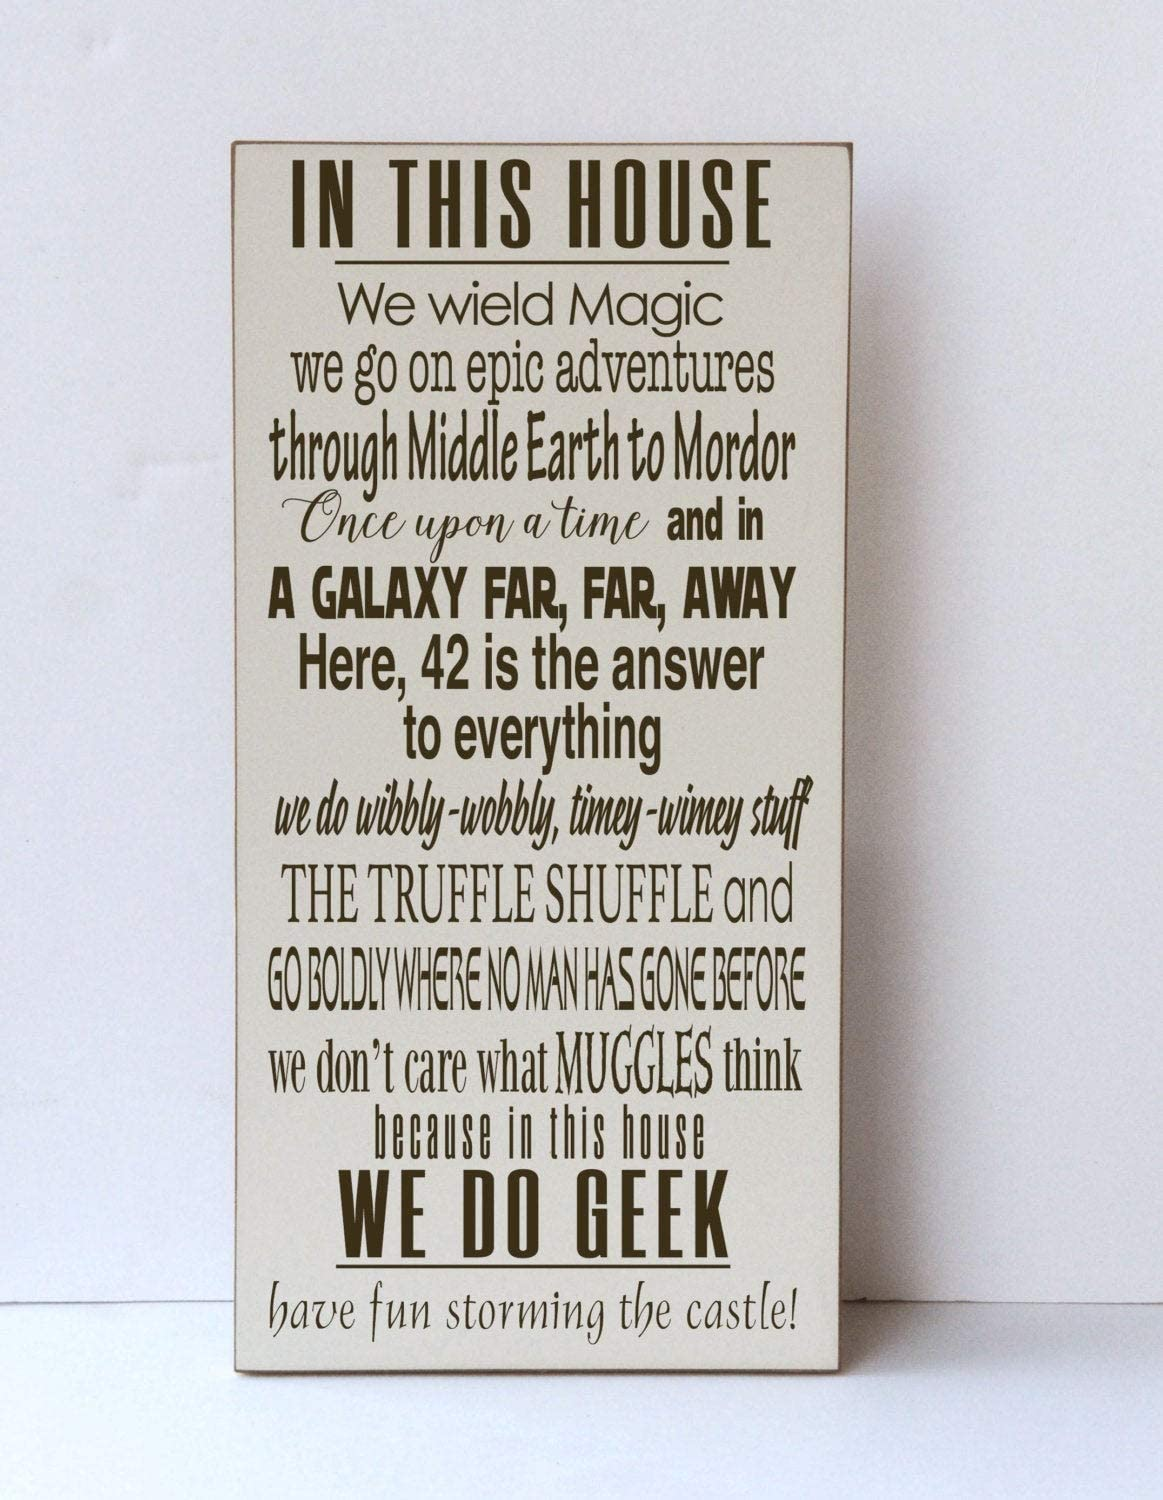 in This House Middle Earth DKISEE We Do Geek Wood Sign Truffle Shuffle We Wield Magic Epic Adventures 12x24 Inch Decorative Wood Sign Plaque Board 42 Answer to Everything Muggles Sign